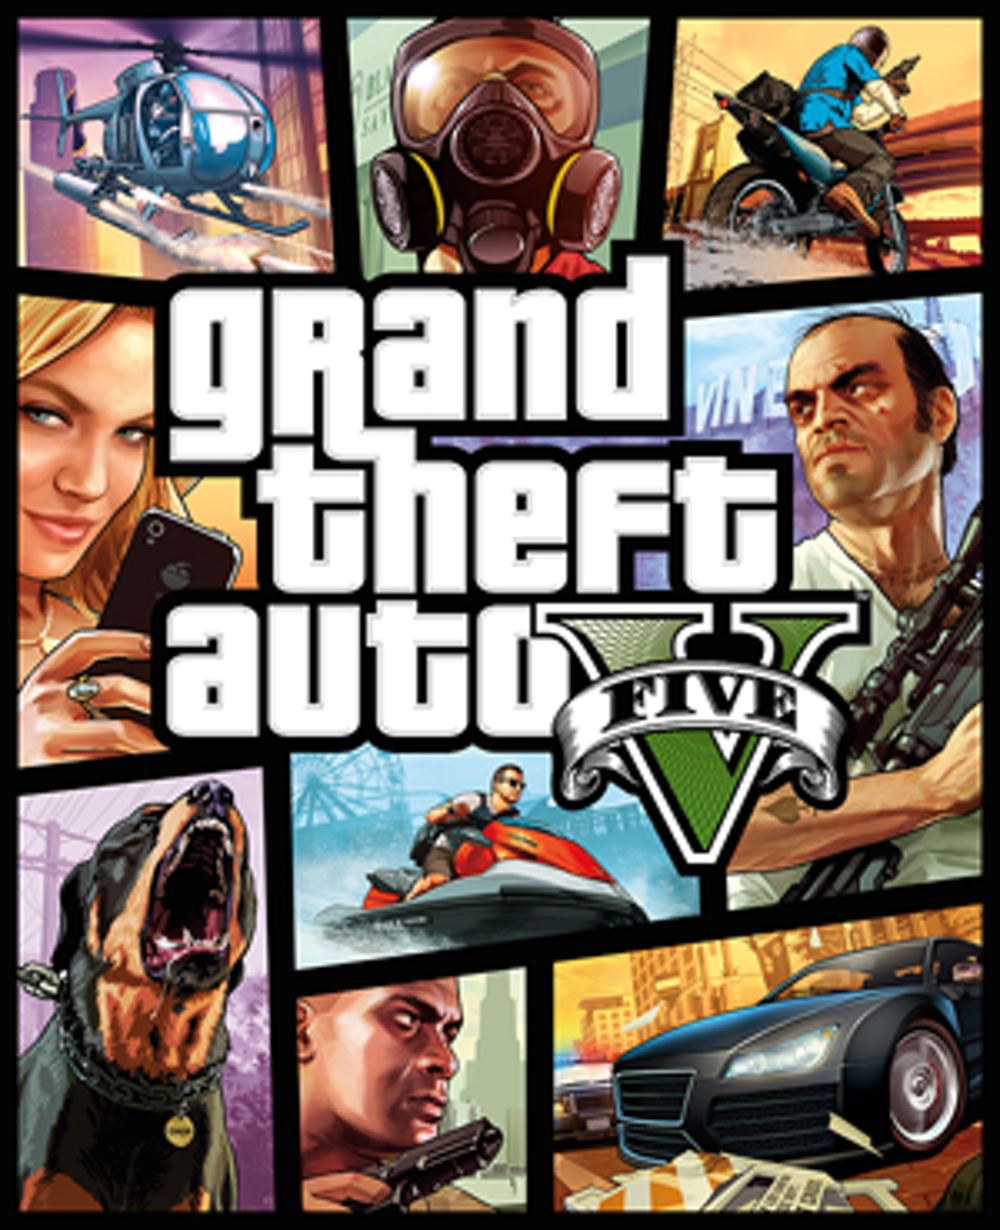 Virtual rape in Grand Theft Auto 5: learning the limits of